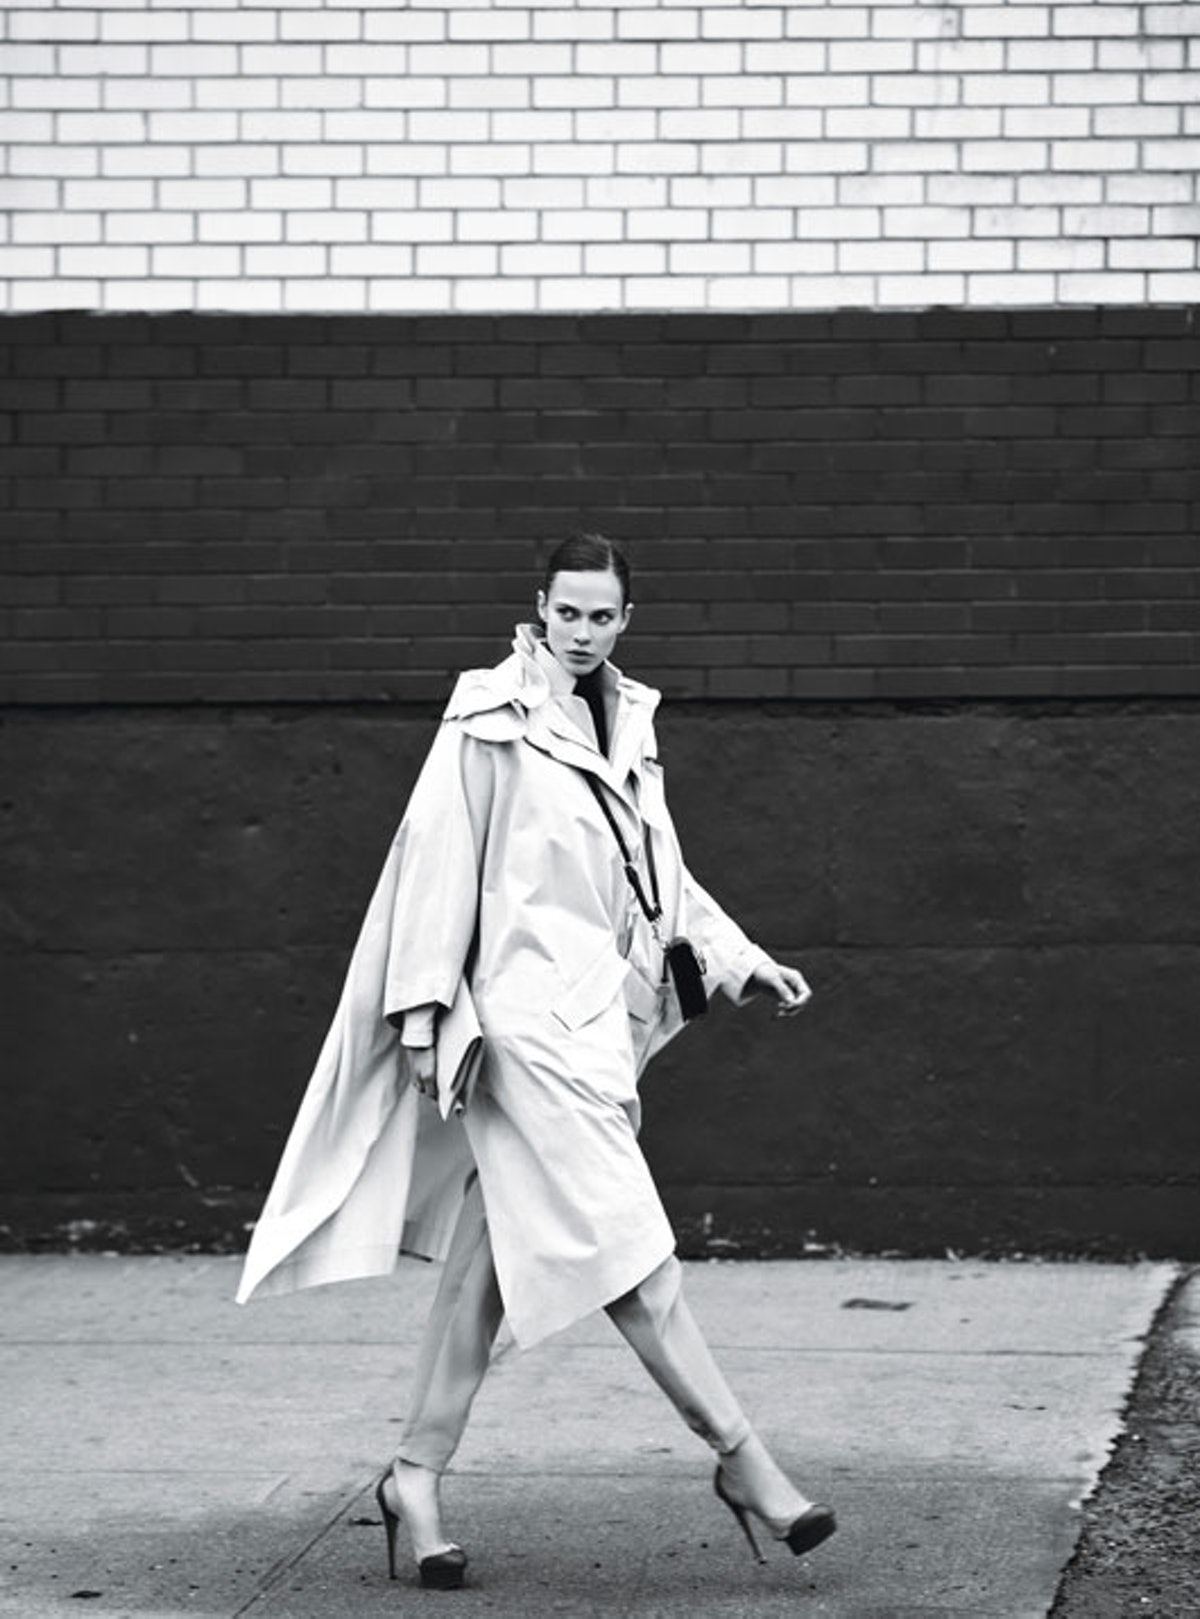 fass-menswear-inspired-coats-and-trousers-04-l.jpg